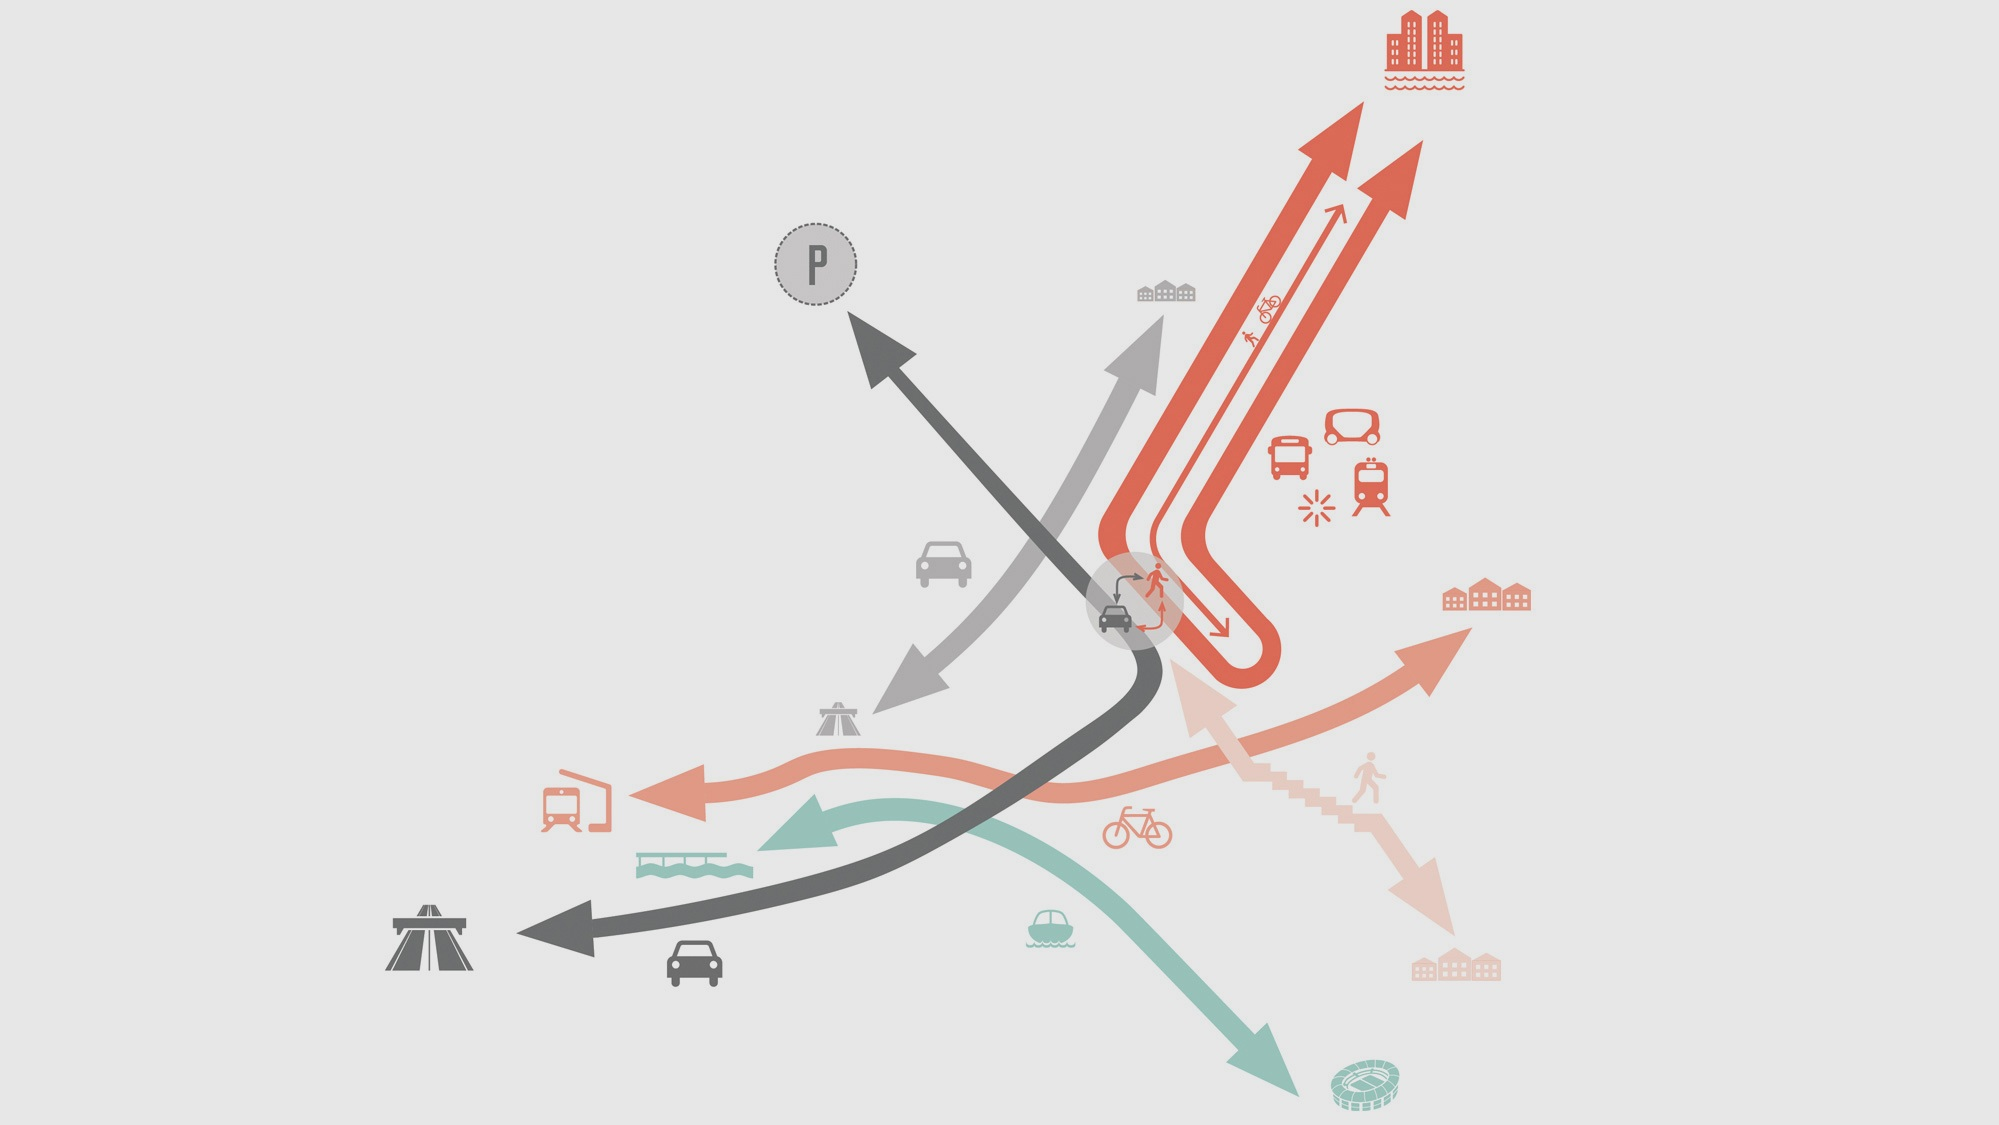 The Mulimodal Hub creates a connection point between urban and sub-urban traffic